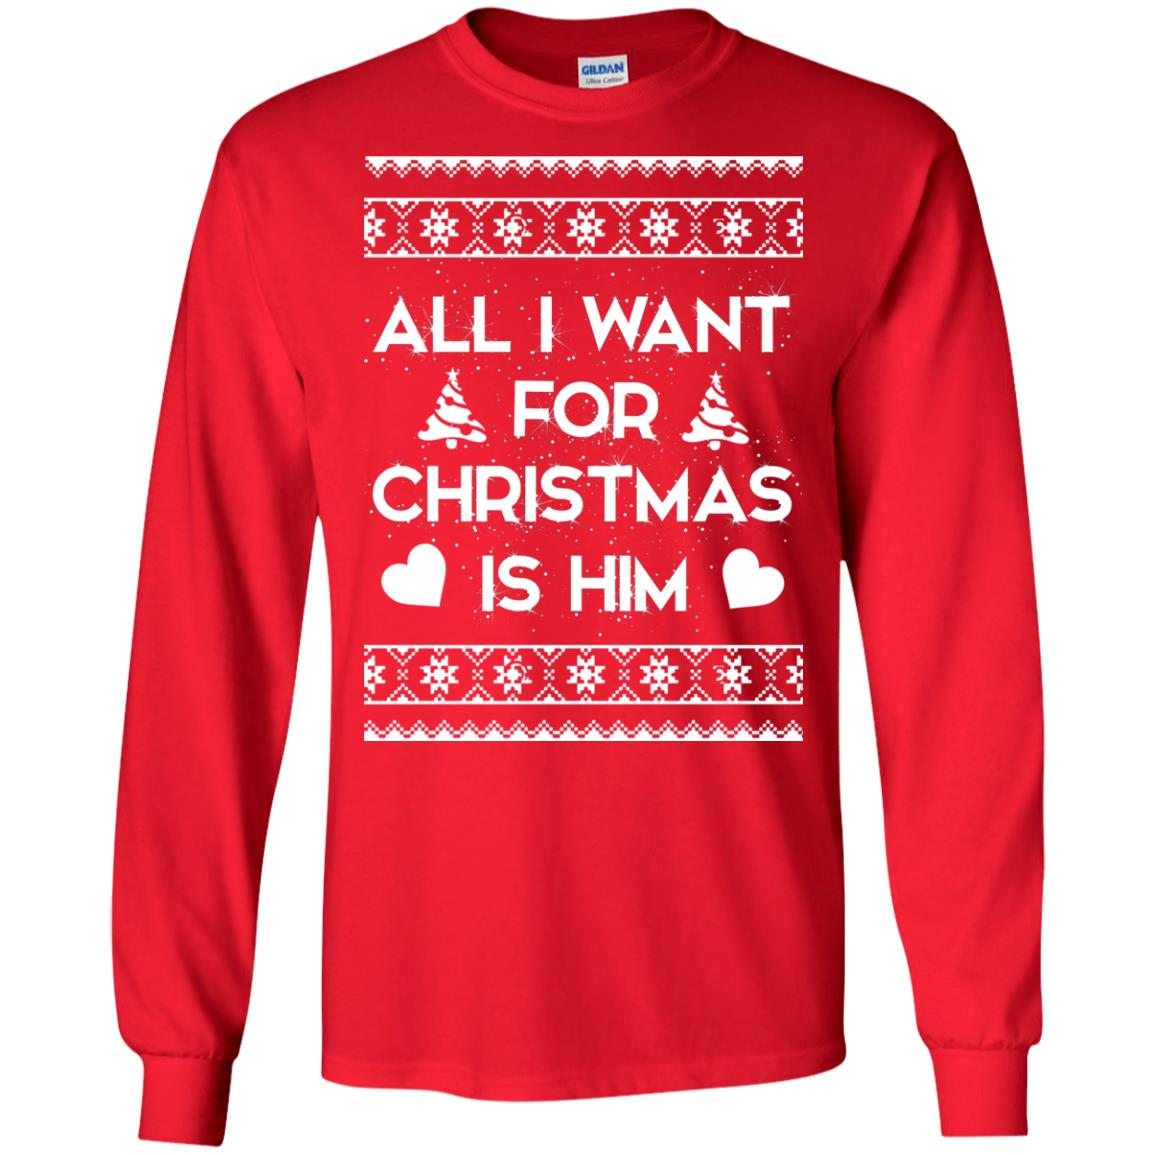 image 2373 - Couple Sweatshirt: All I Want For Christmas Is Him Ugly Sweater, Shirt